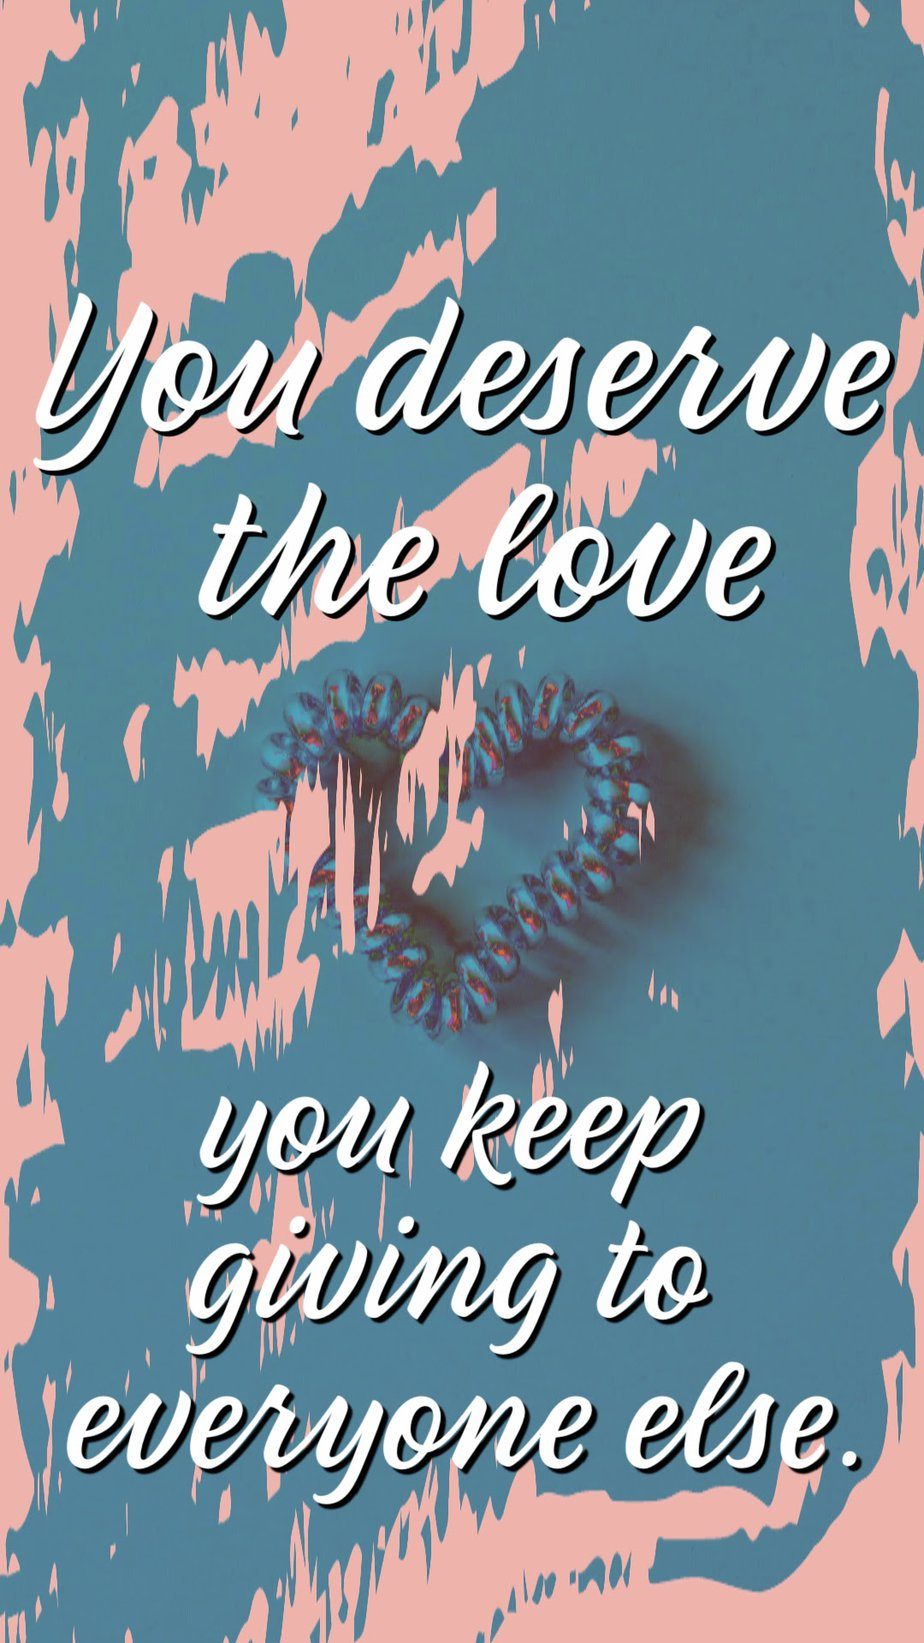 Best Aesthetic Phone Wallpaper Quotes About Love You deserve the love you keep giving to everyone else